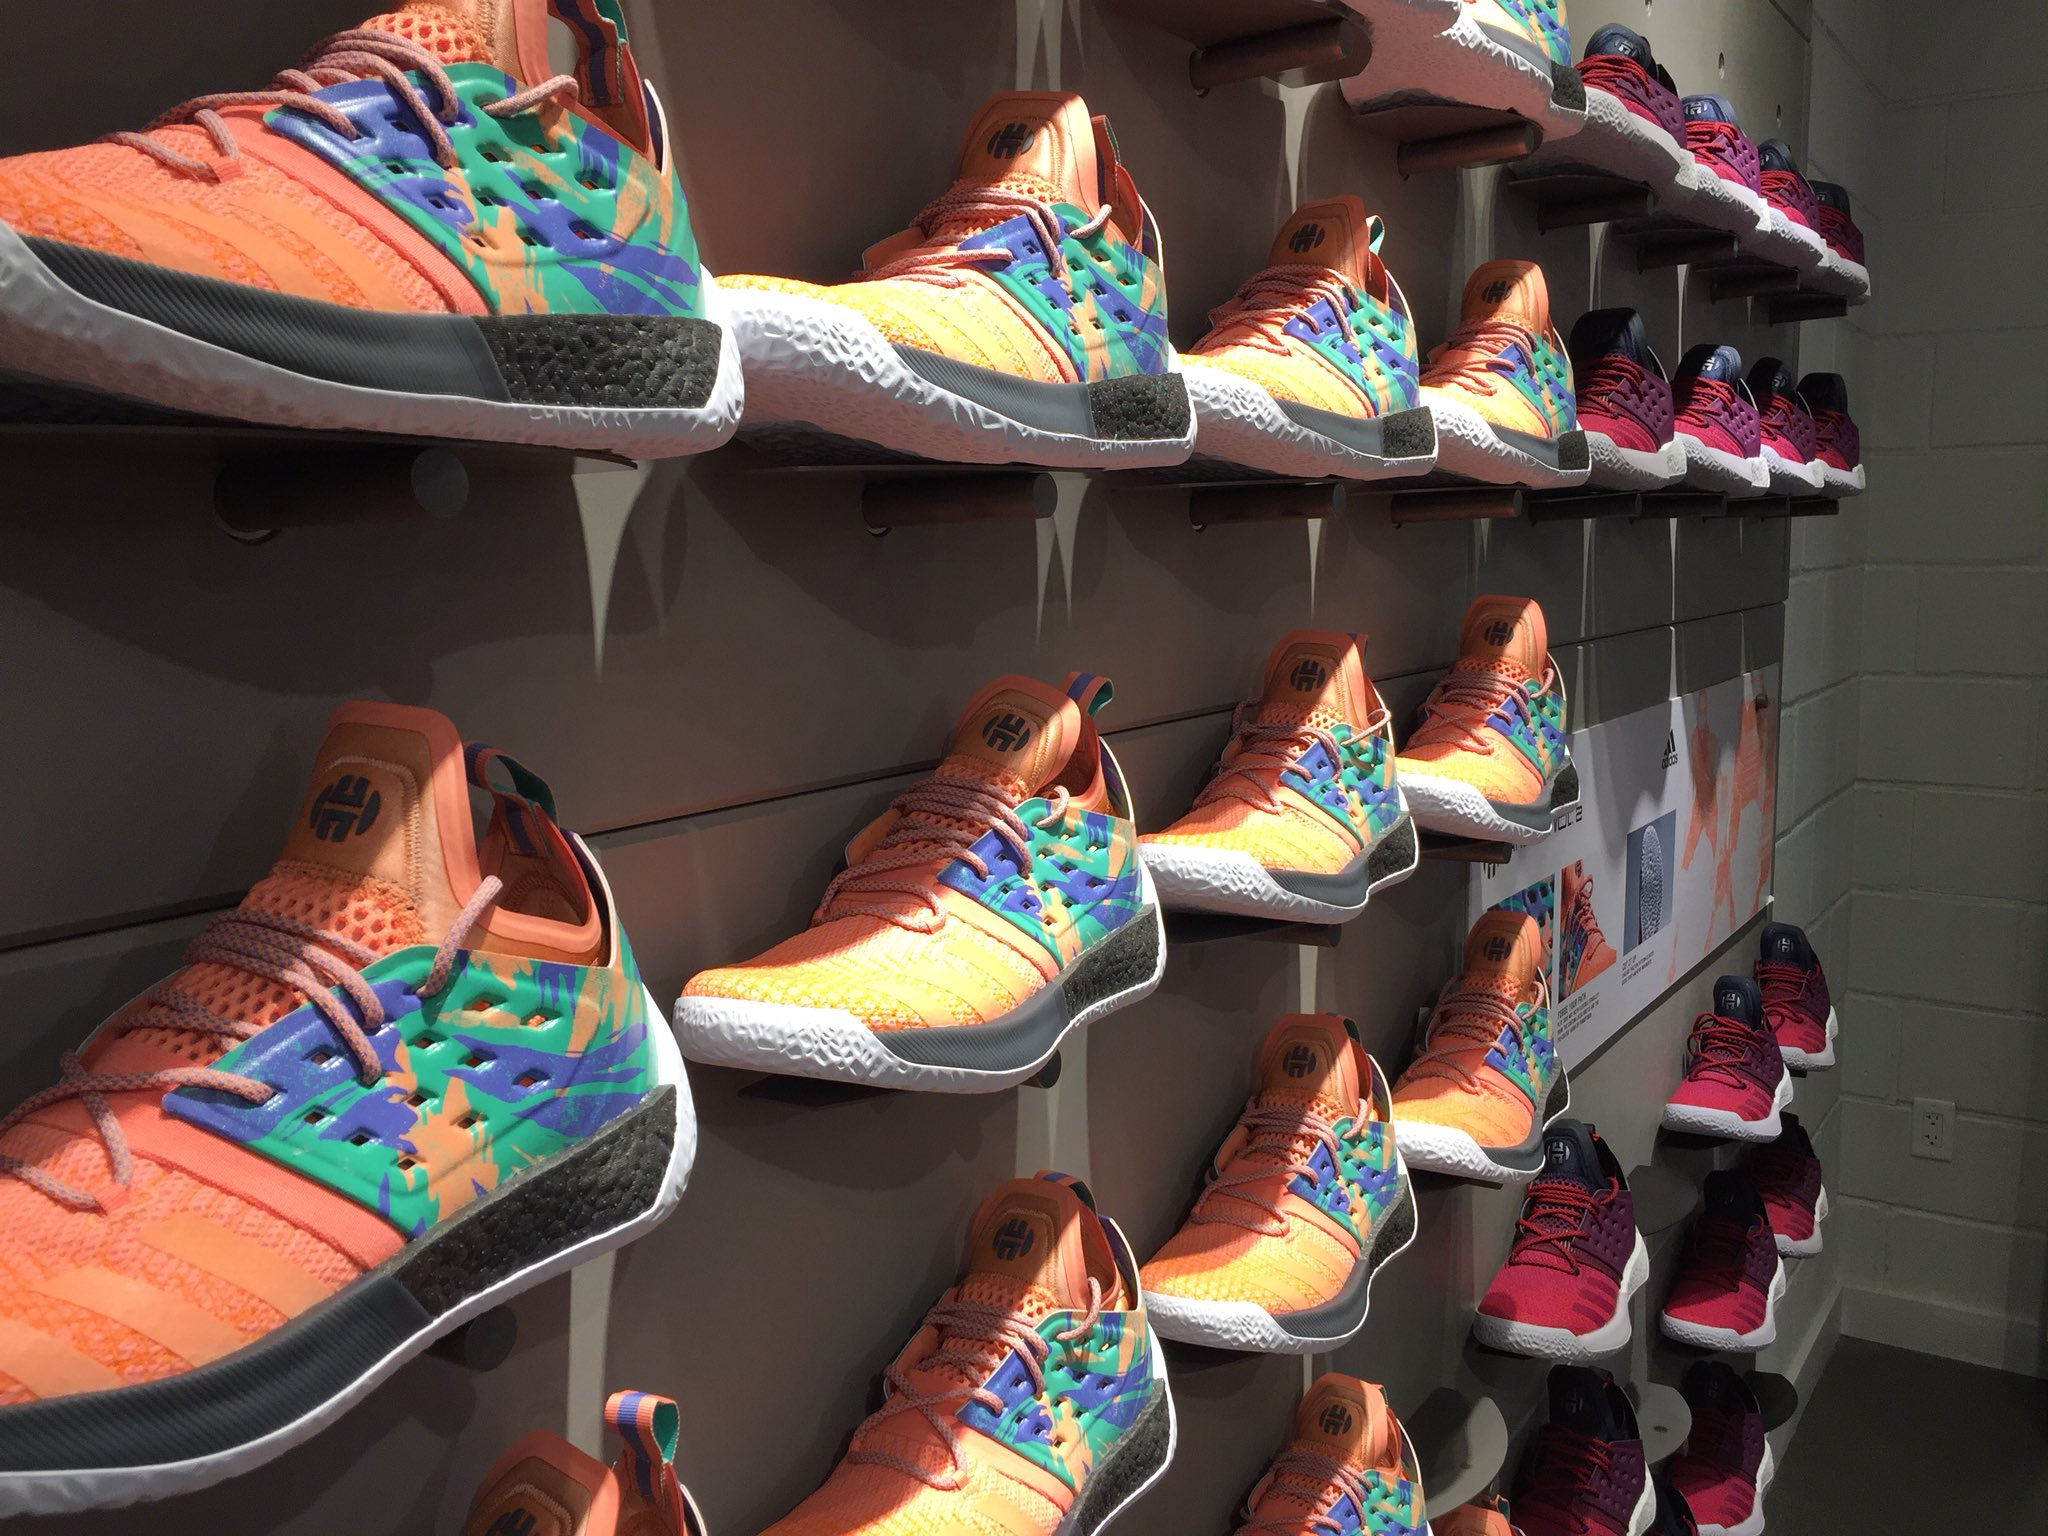 Harden Vol. 2 on shelves �� �� https://t.co/PHhihQkUAS